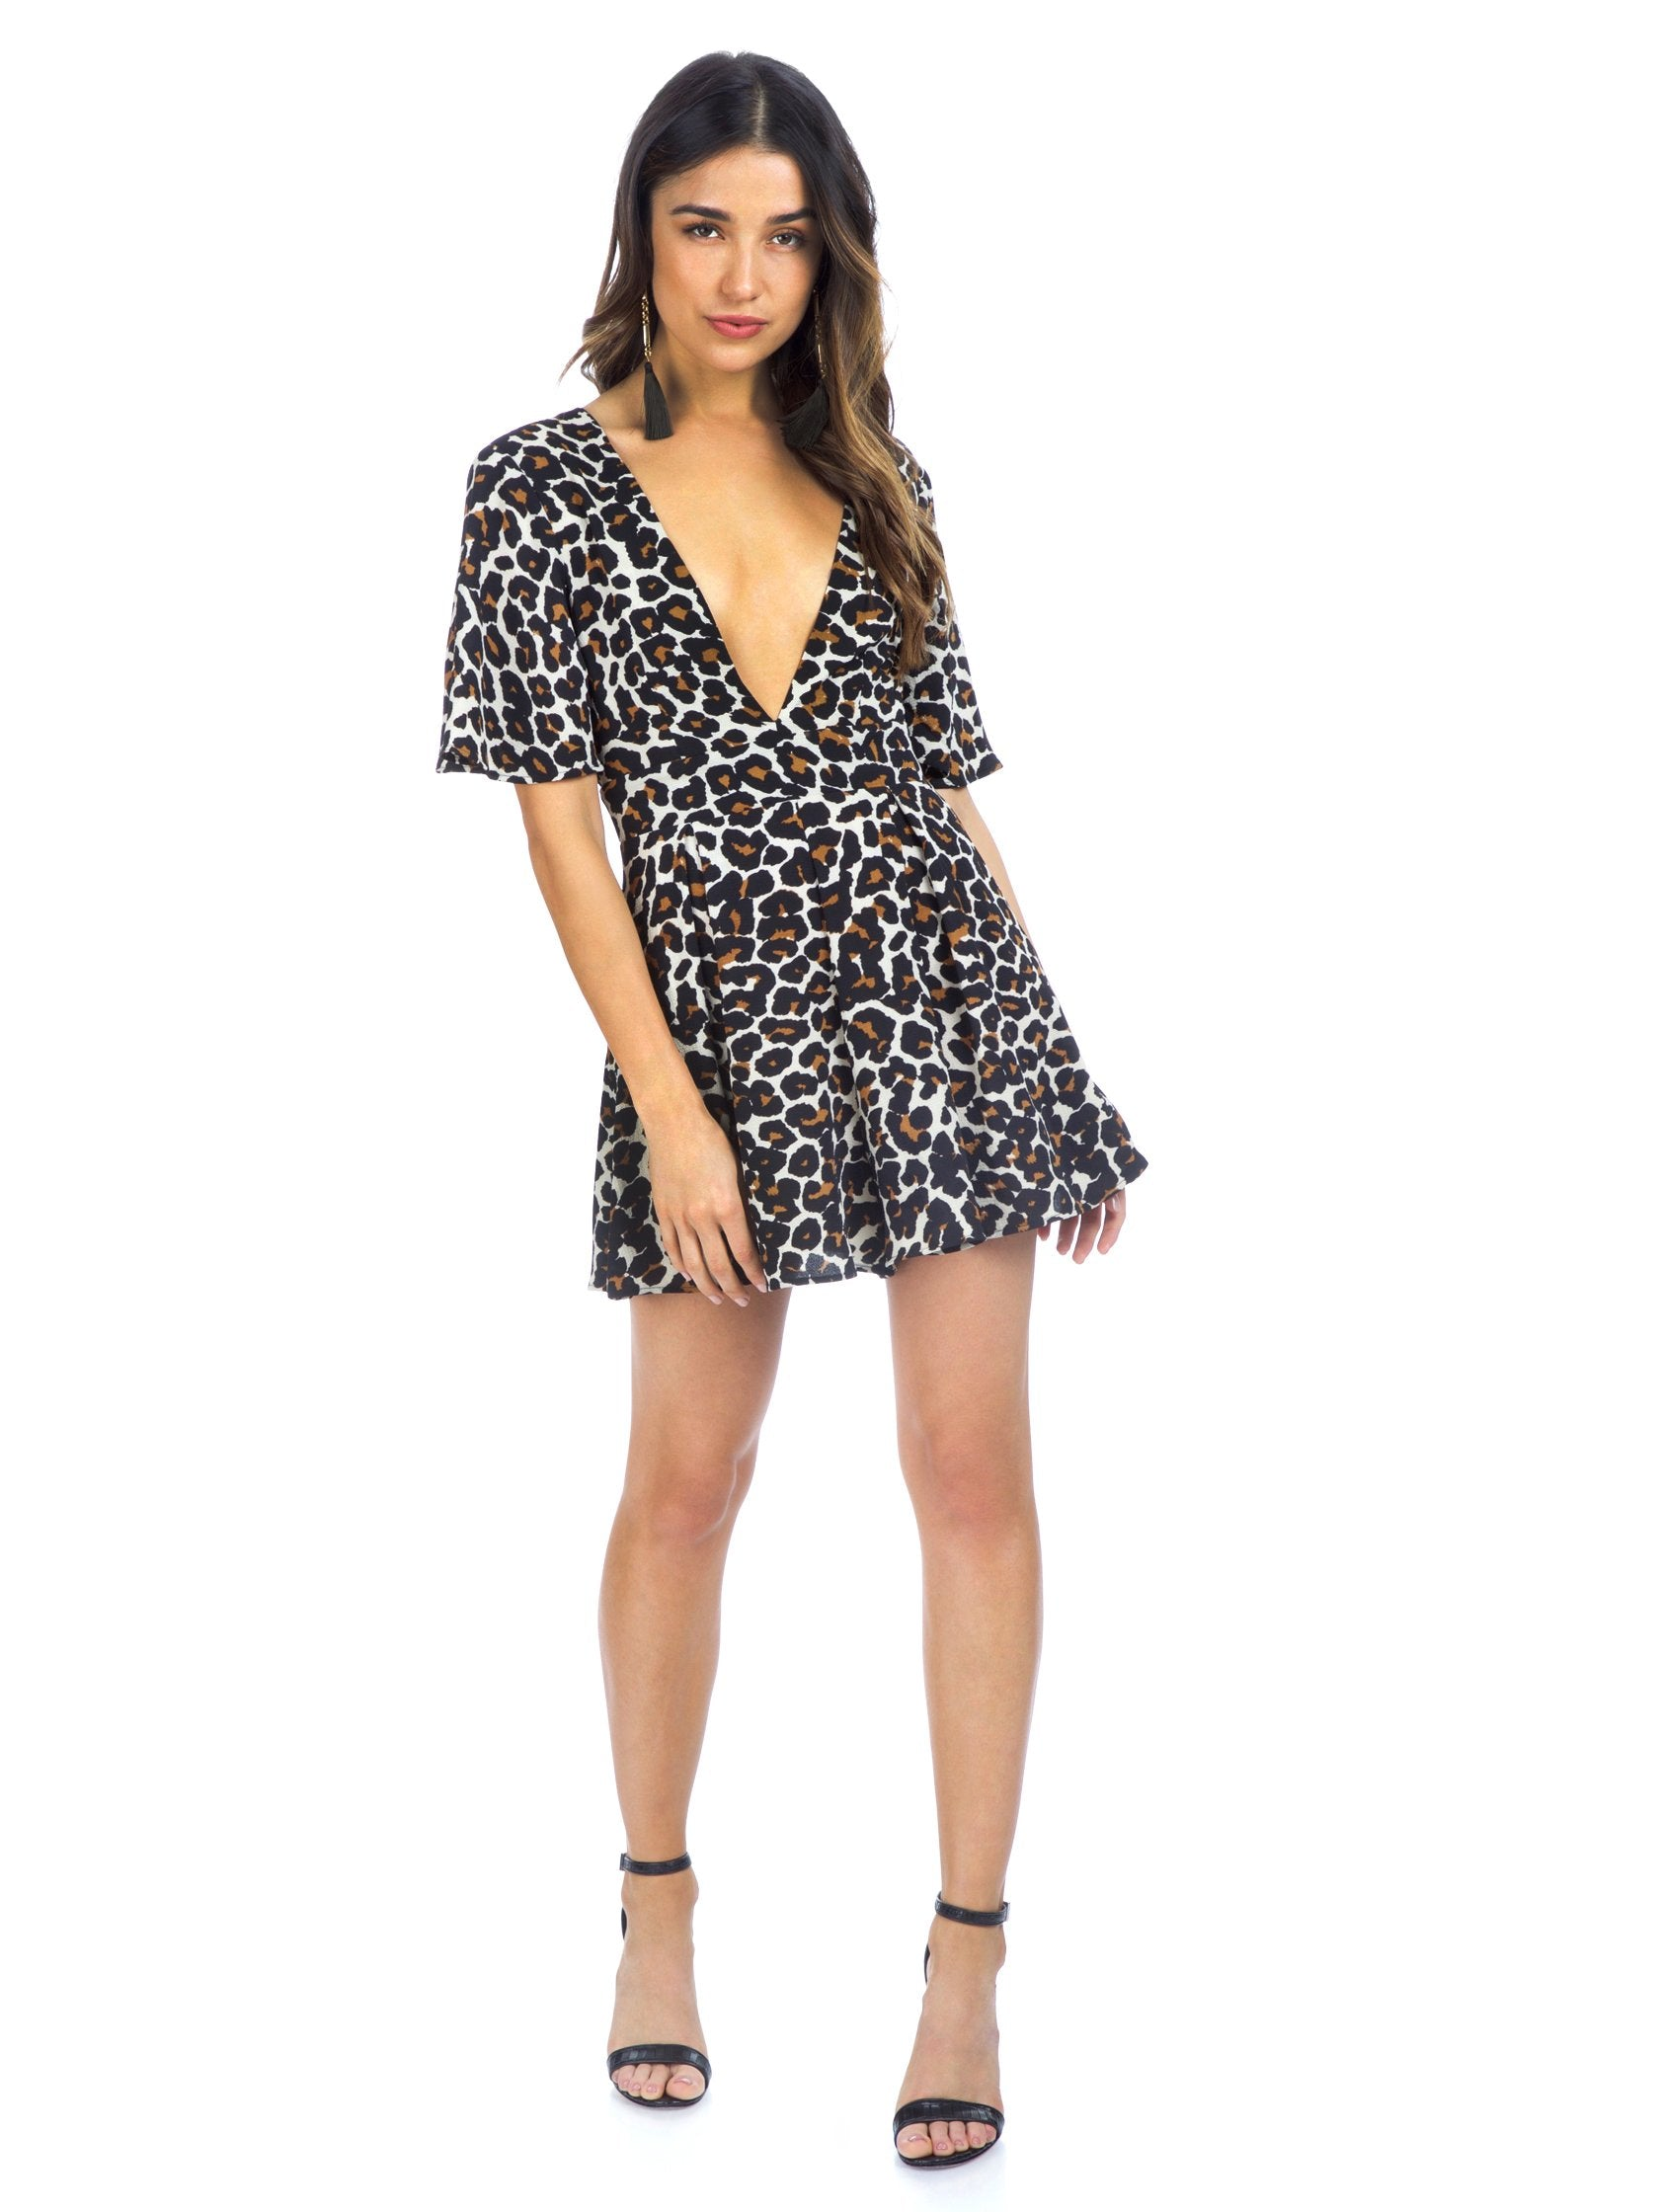 Girl outfit in a romper rental from Show Me Your Mumu called Tallara Romper